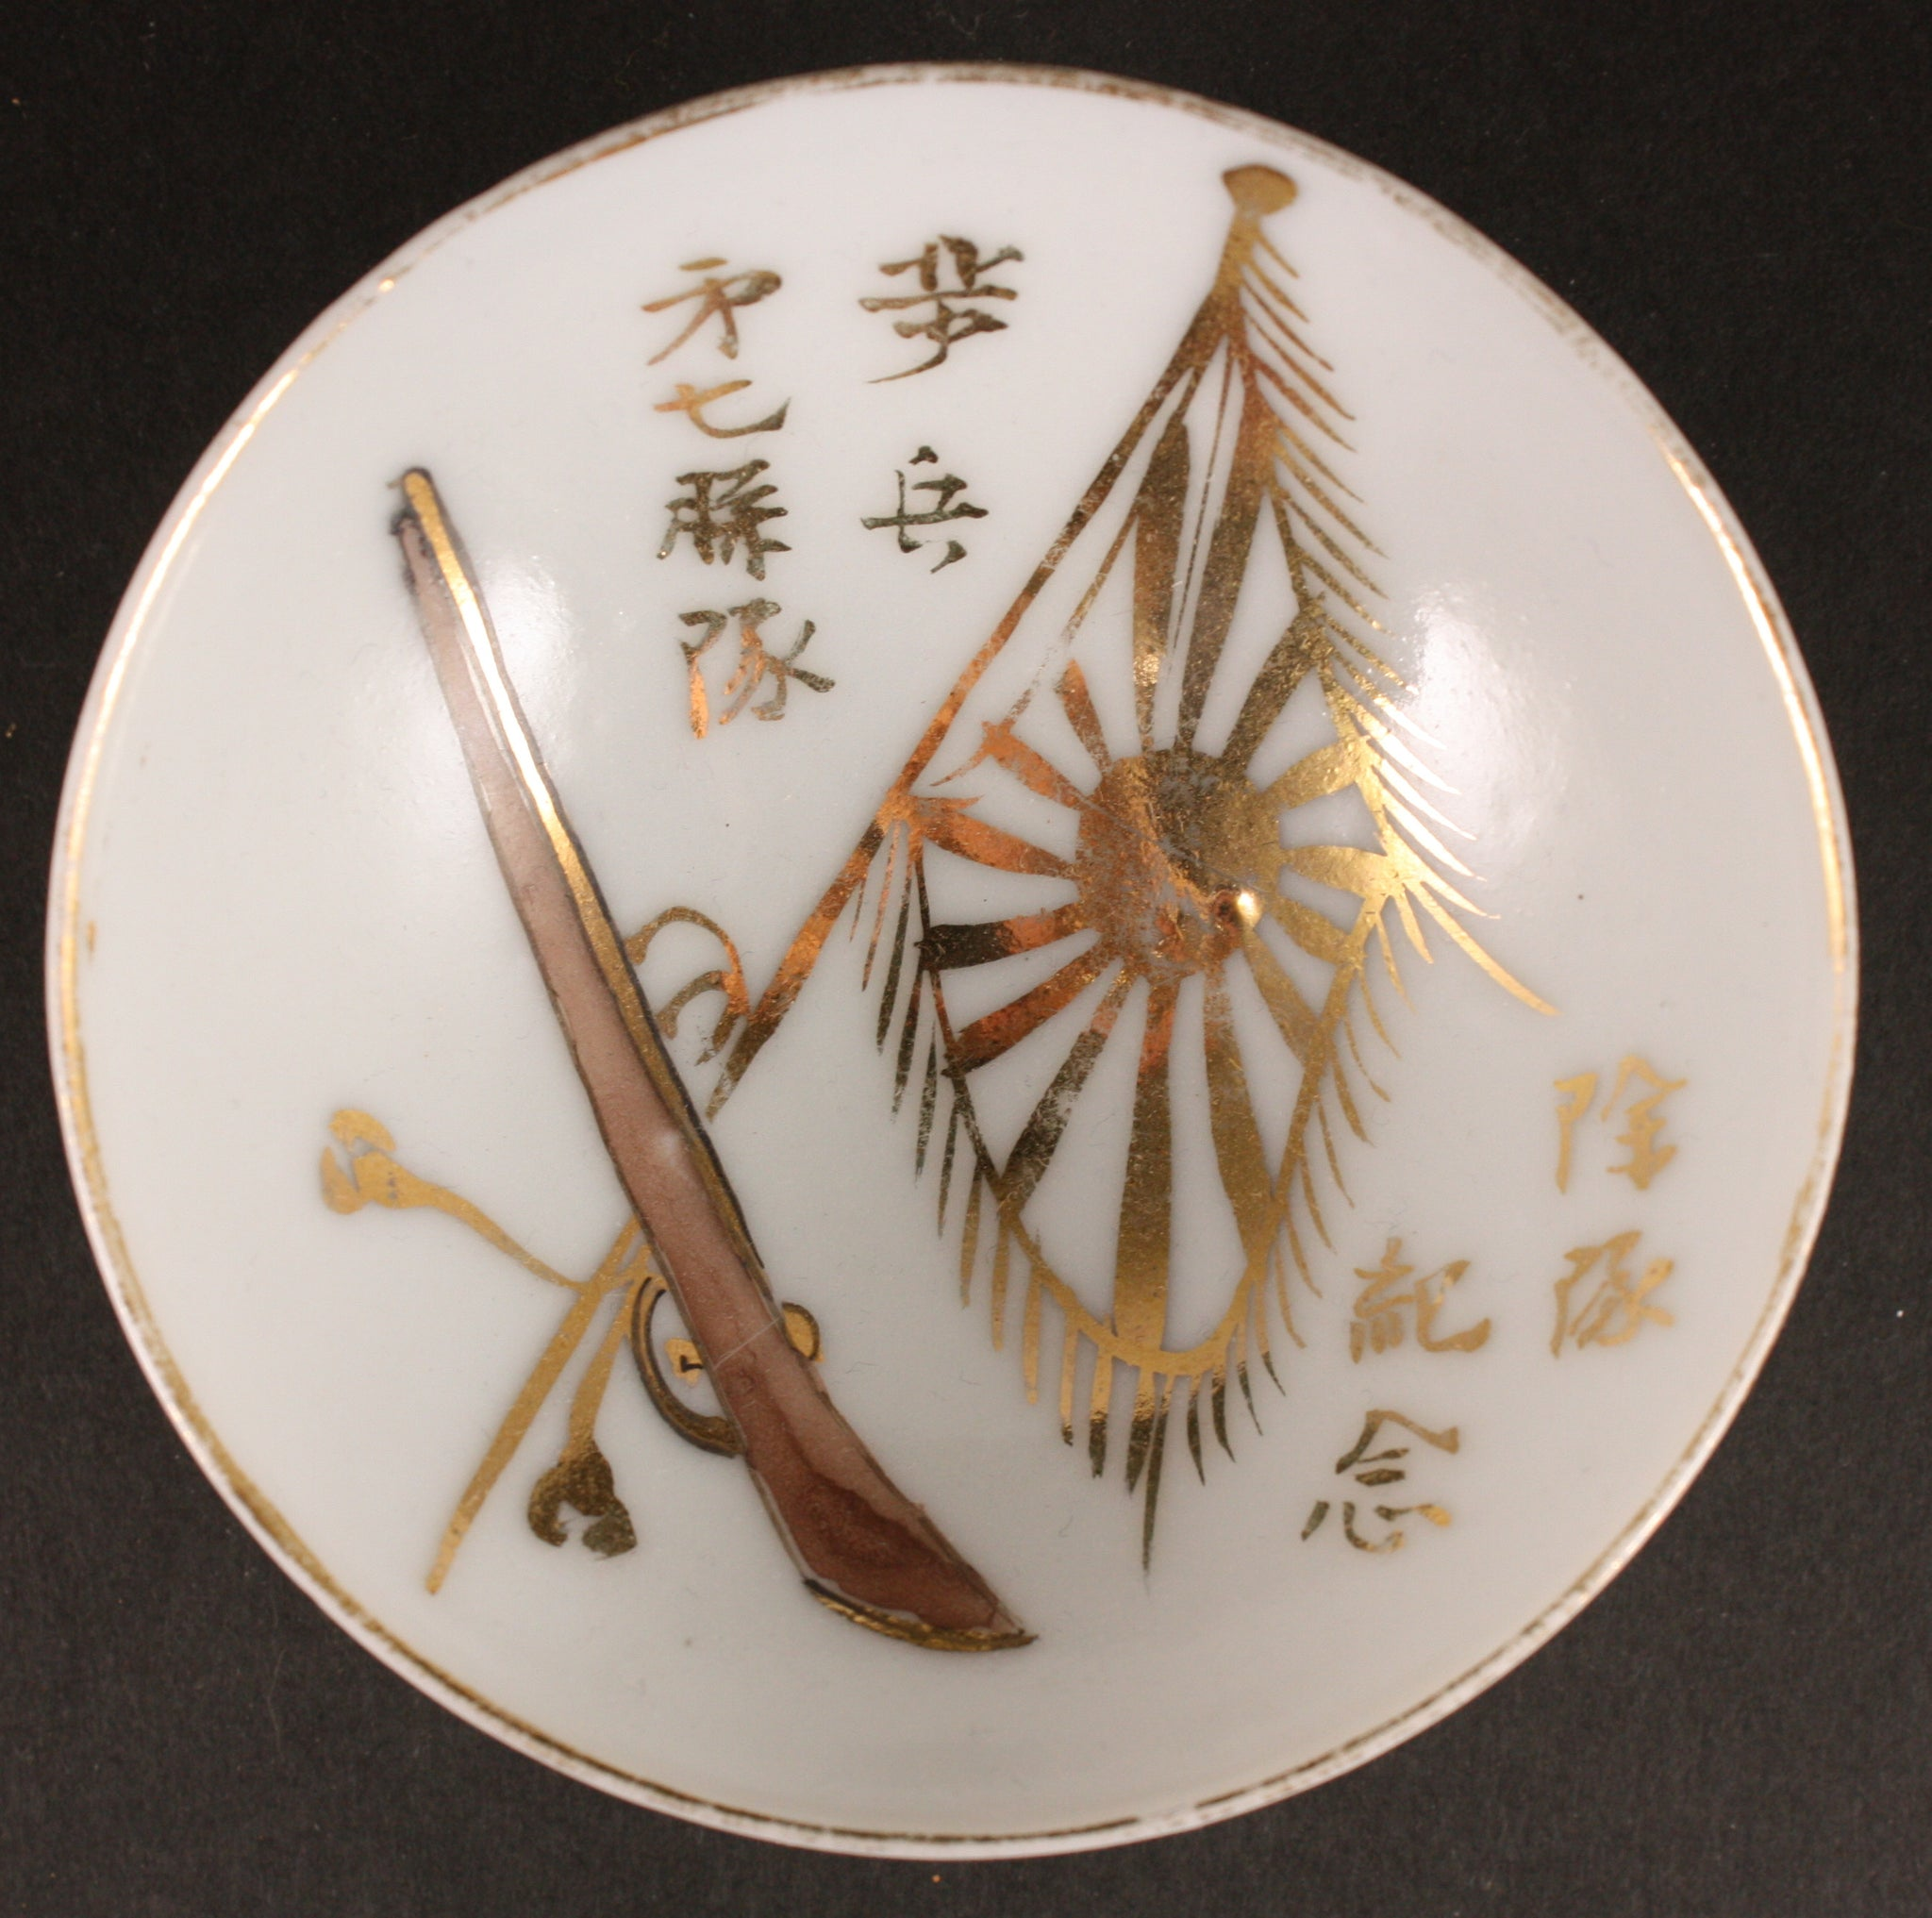 Antique Japanese Military Rifle Flag Infantry Army Sake Cup